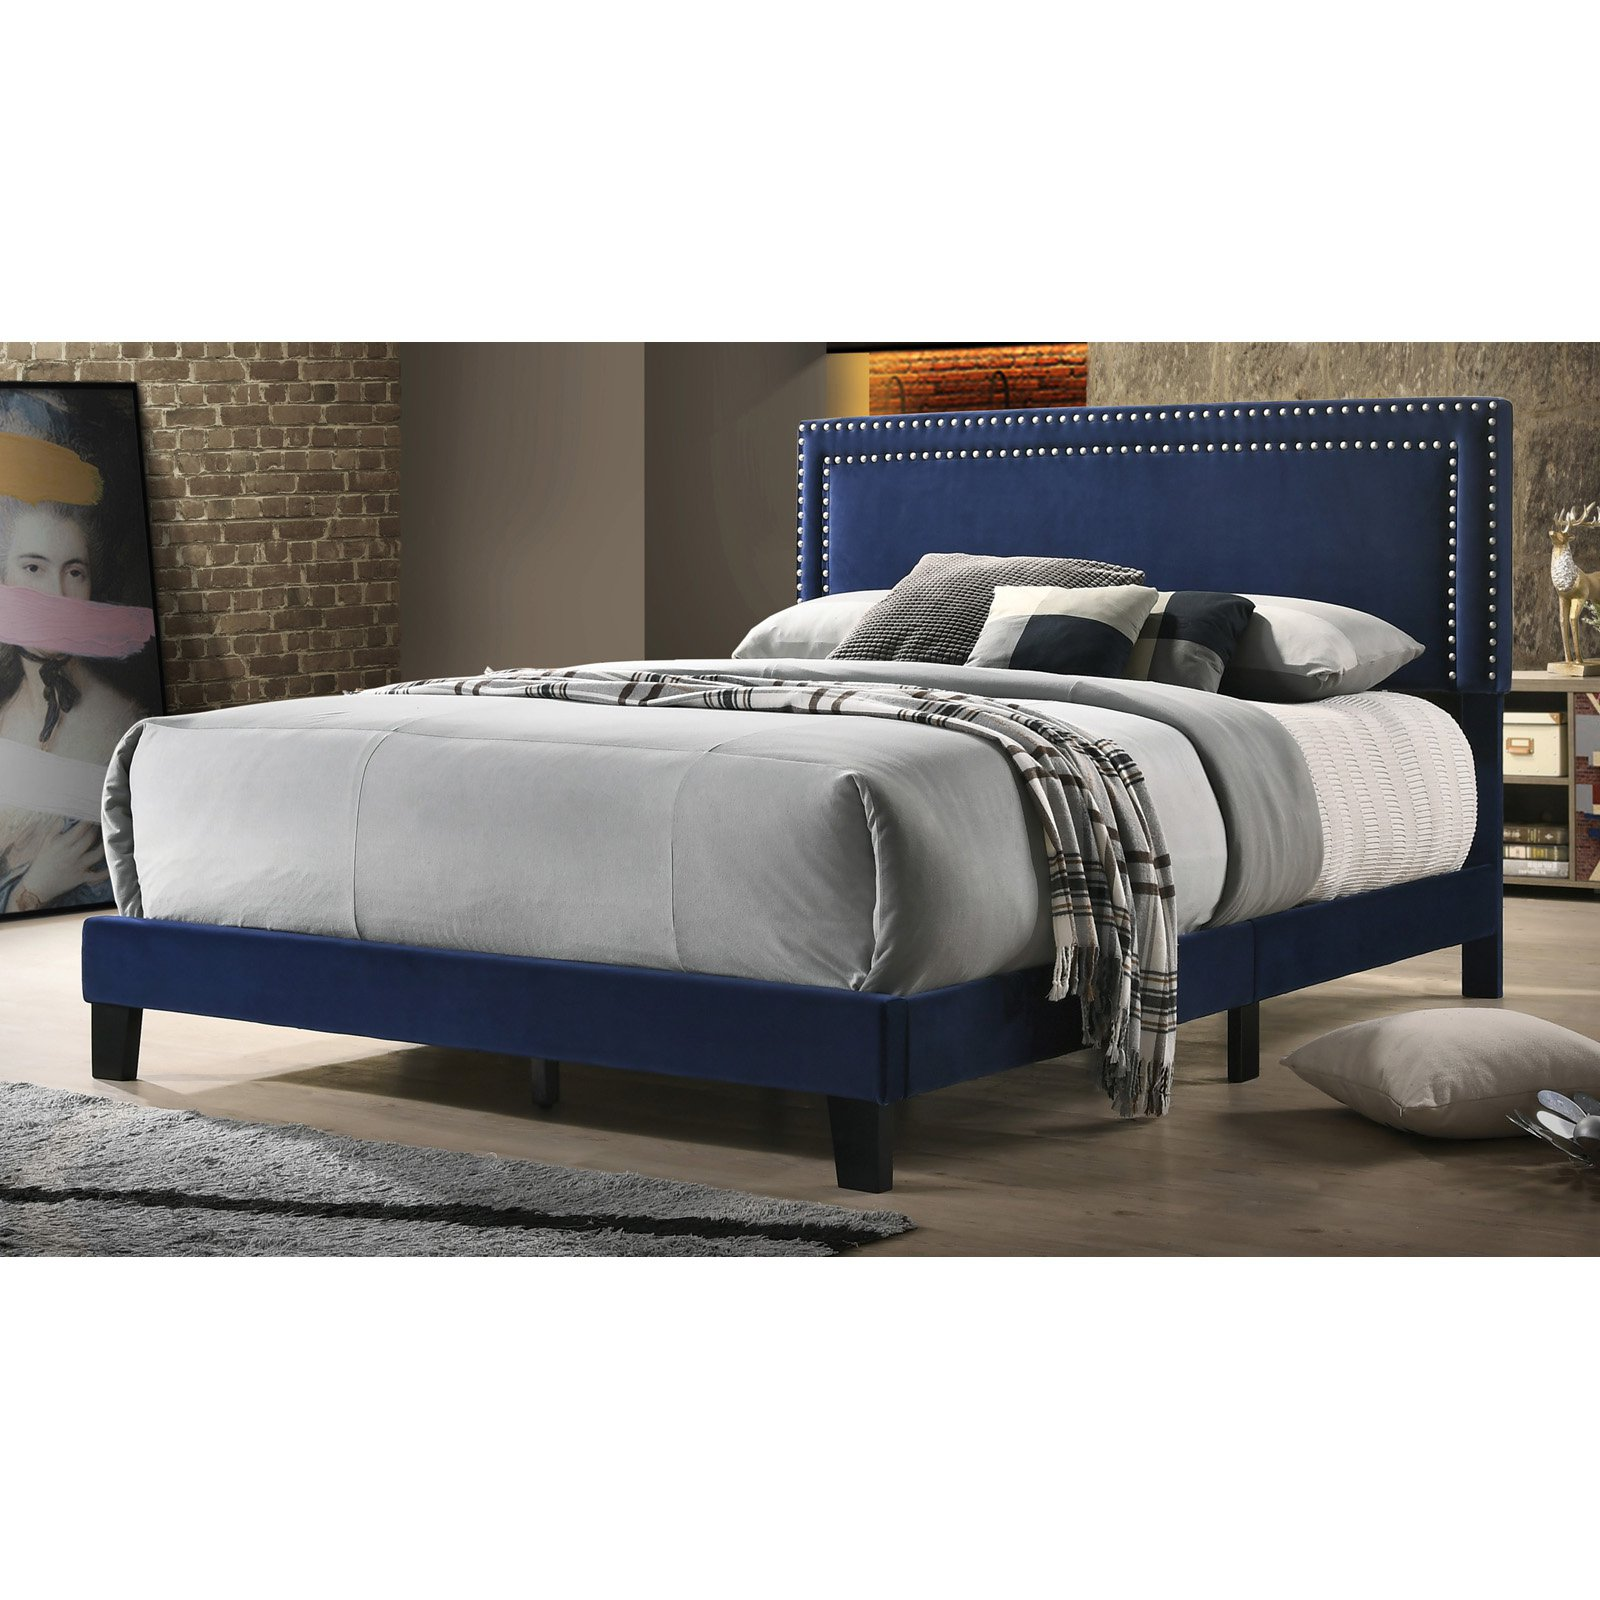 Stefany Upholstered Panel Bed Navy Blue, Size Queen